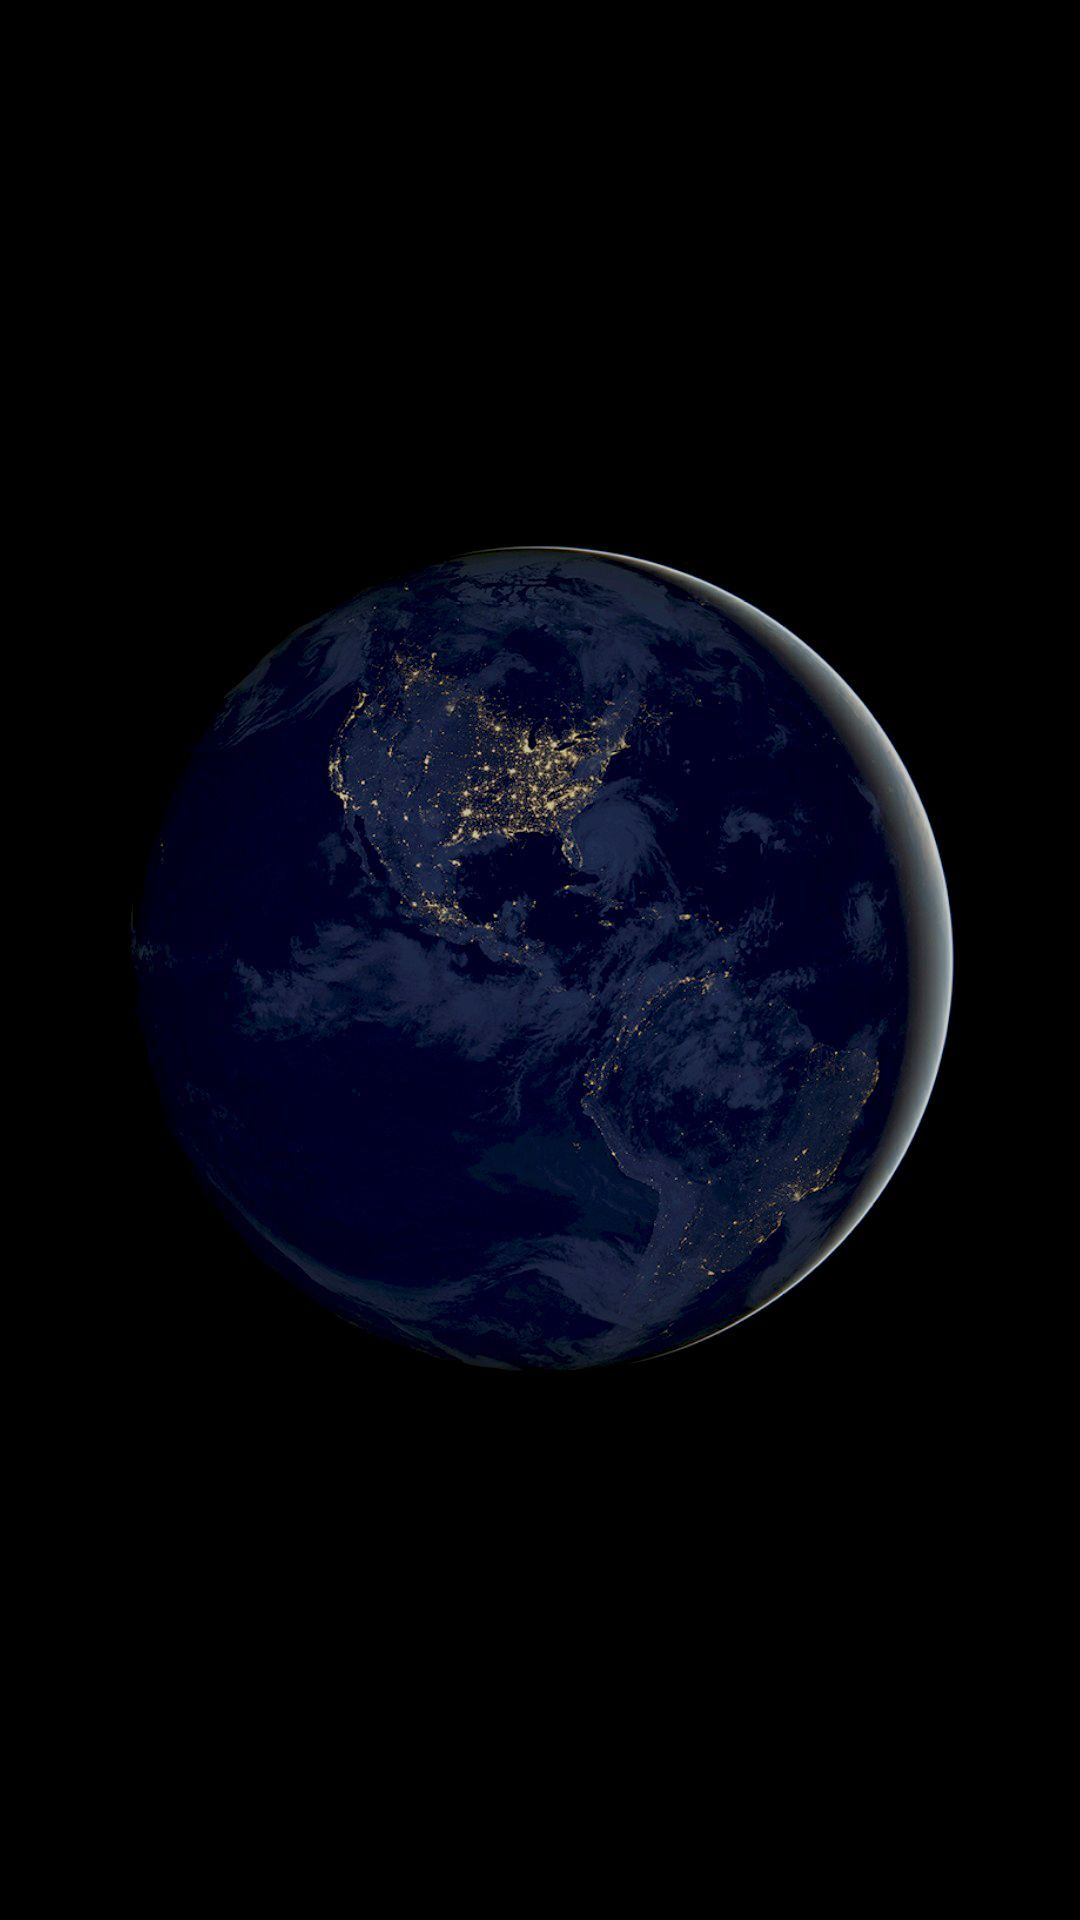 65+ 4k Earth Images, HD Photos (1080p), Wallpapers ...